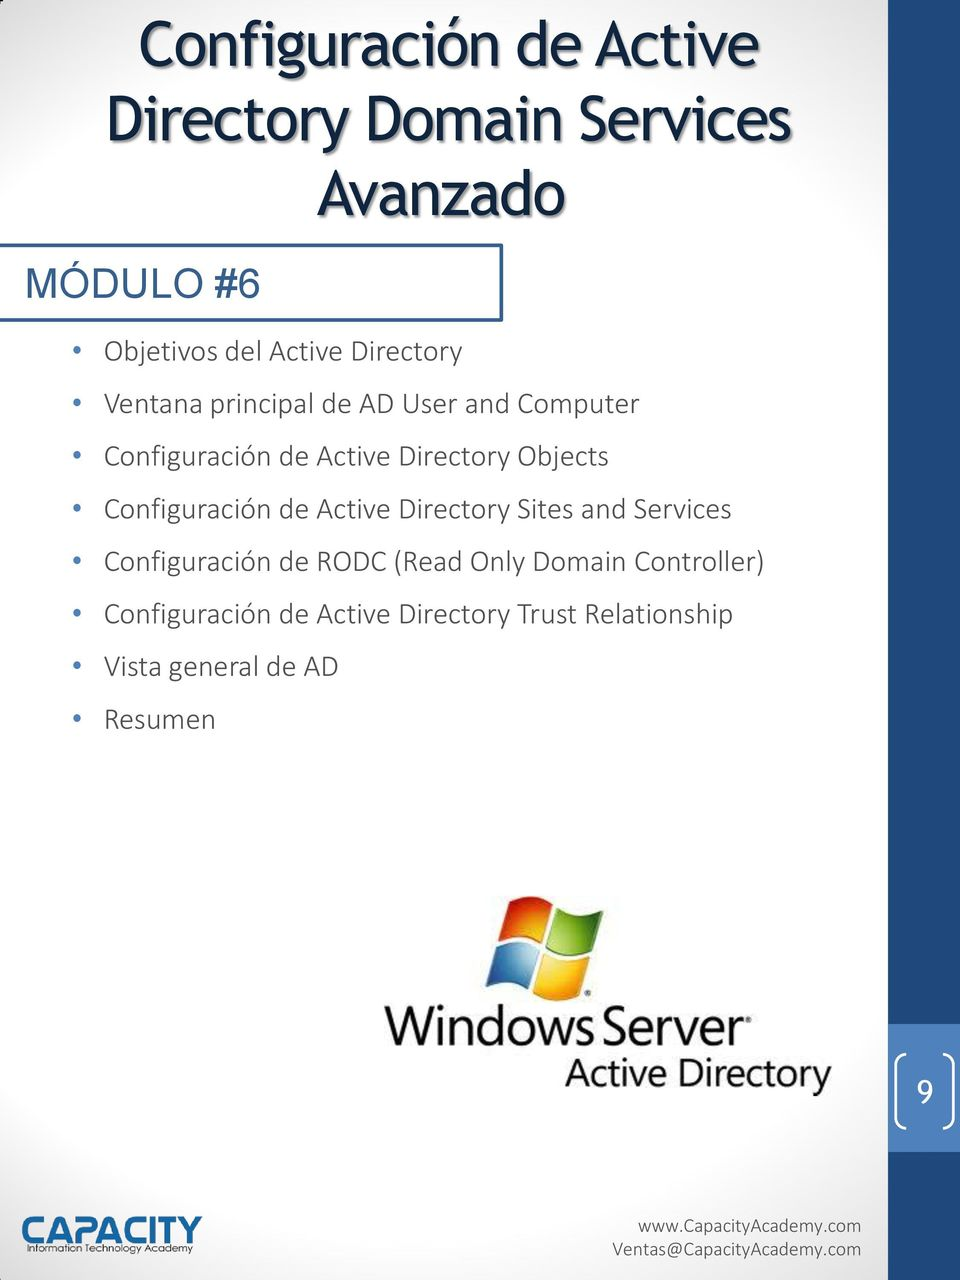 Objects Configuración de Active Directory Sites and Services Configuración de RODC (Read